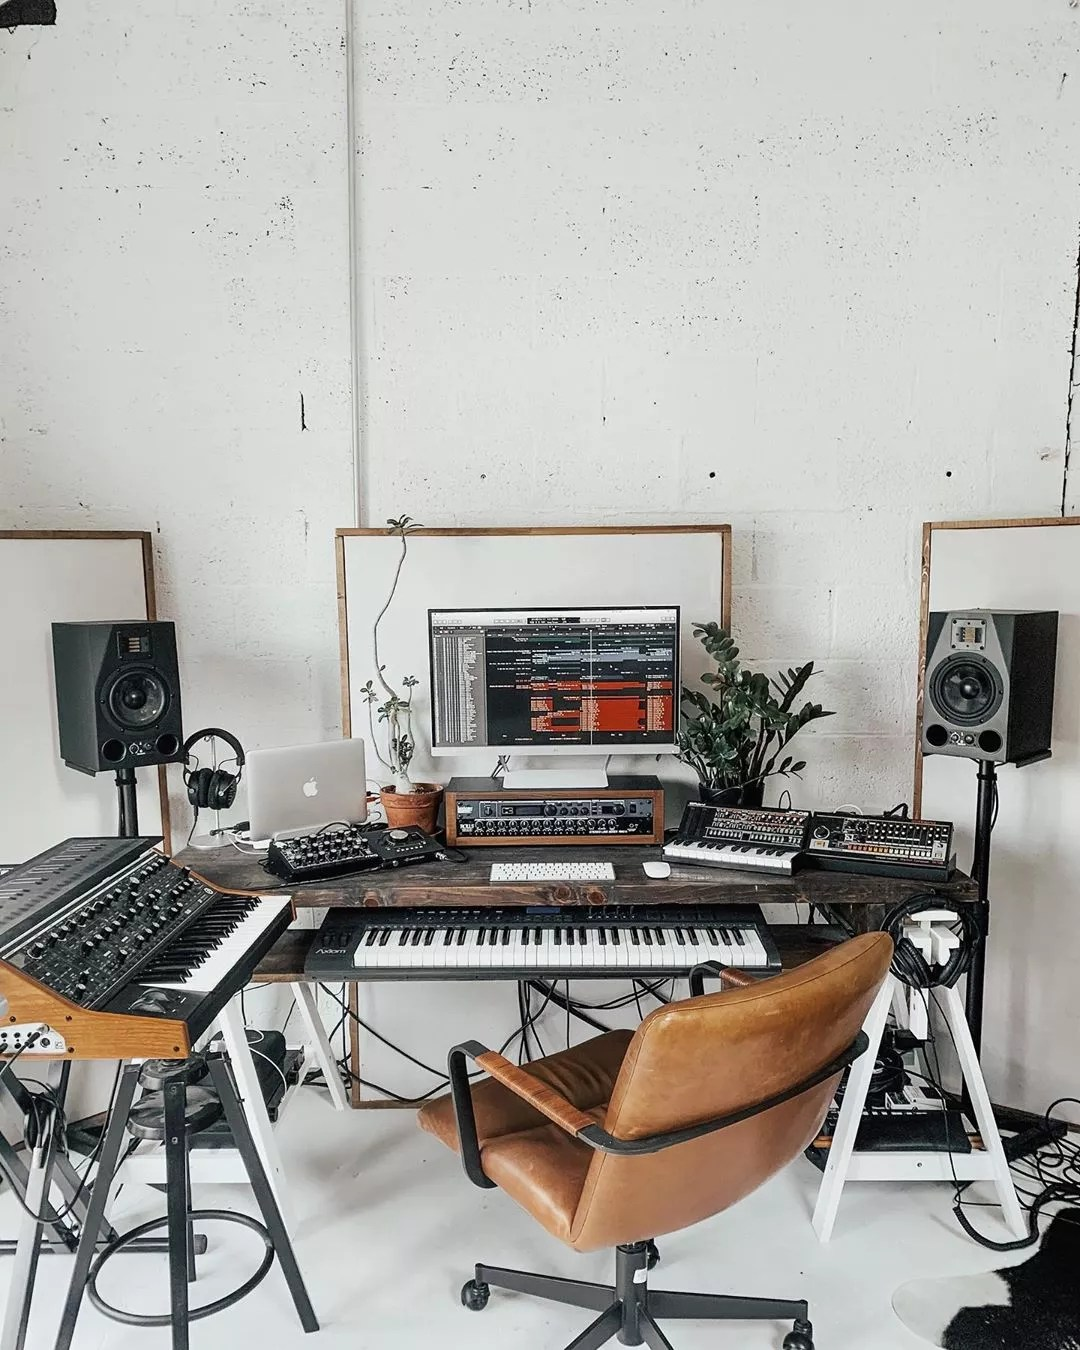 At Home Music Studio Space with Keyboards and Soundproofing. Photo by Instagram user @austinwcannon